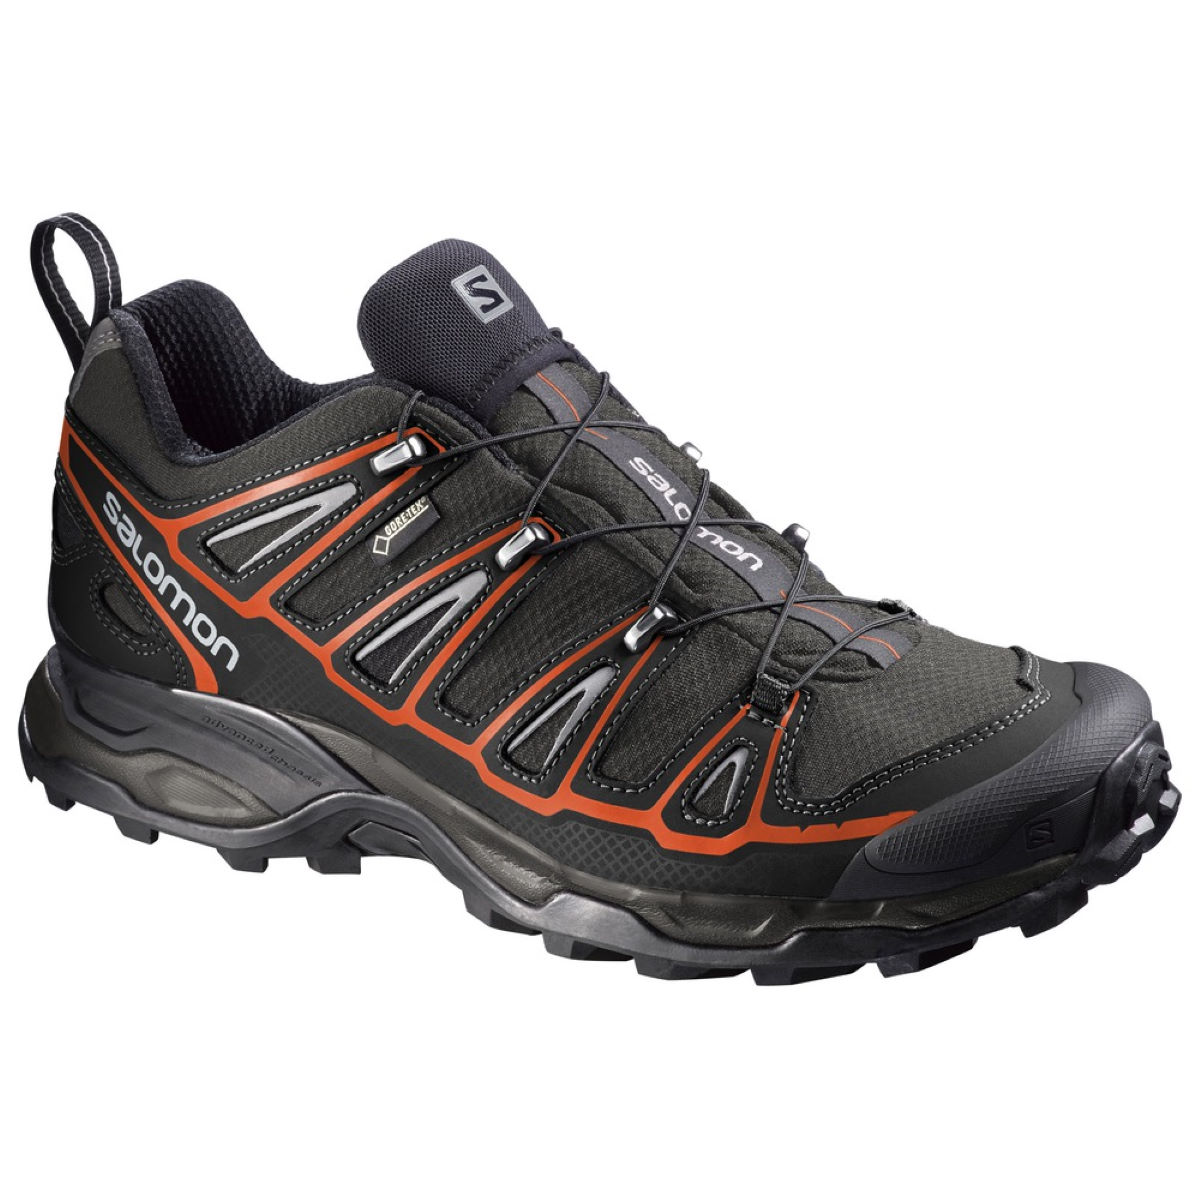 Chaussures Salomon X Ultra 2 GTX - 10 UK Autobahn/Black/Red Randonnée rapide